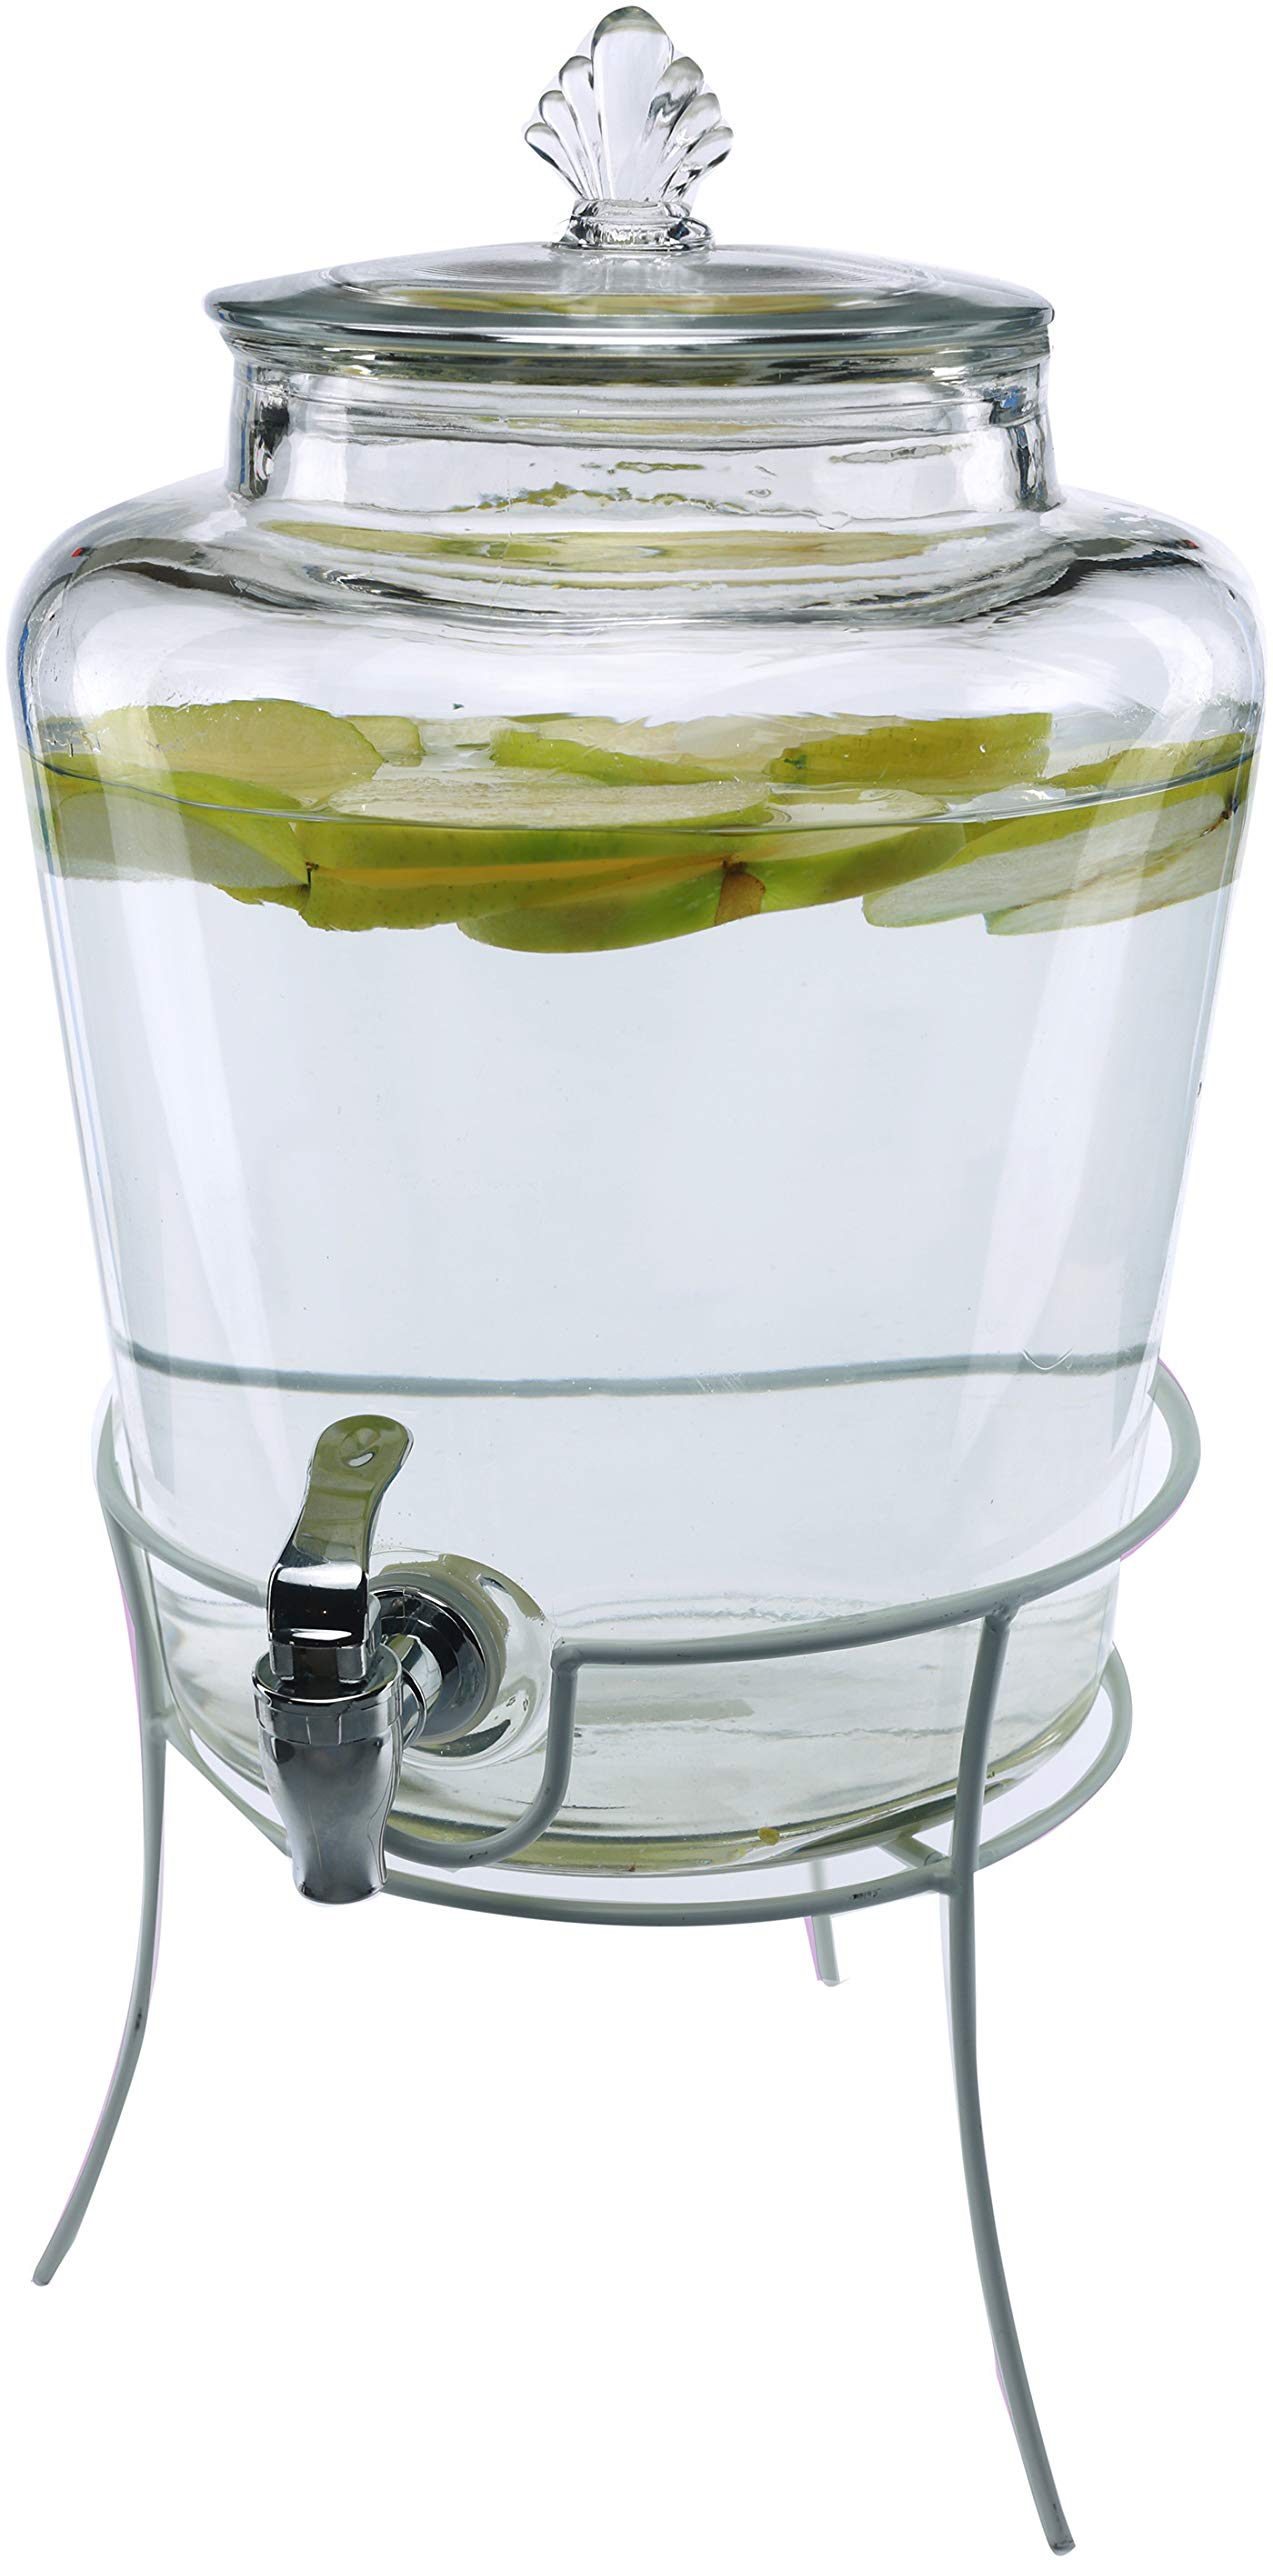 Circleware Market Lane Glass Beverage Dispenser with Metal Stand and Lid, Entertainment Kitchen Glassware Drink Pitcher for Water, Juice, Wine, Kombucha & Cold Drinks, Huge 2.1 Gallon, Clear by Circleware